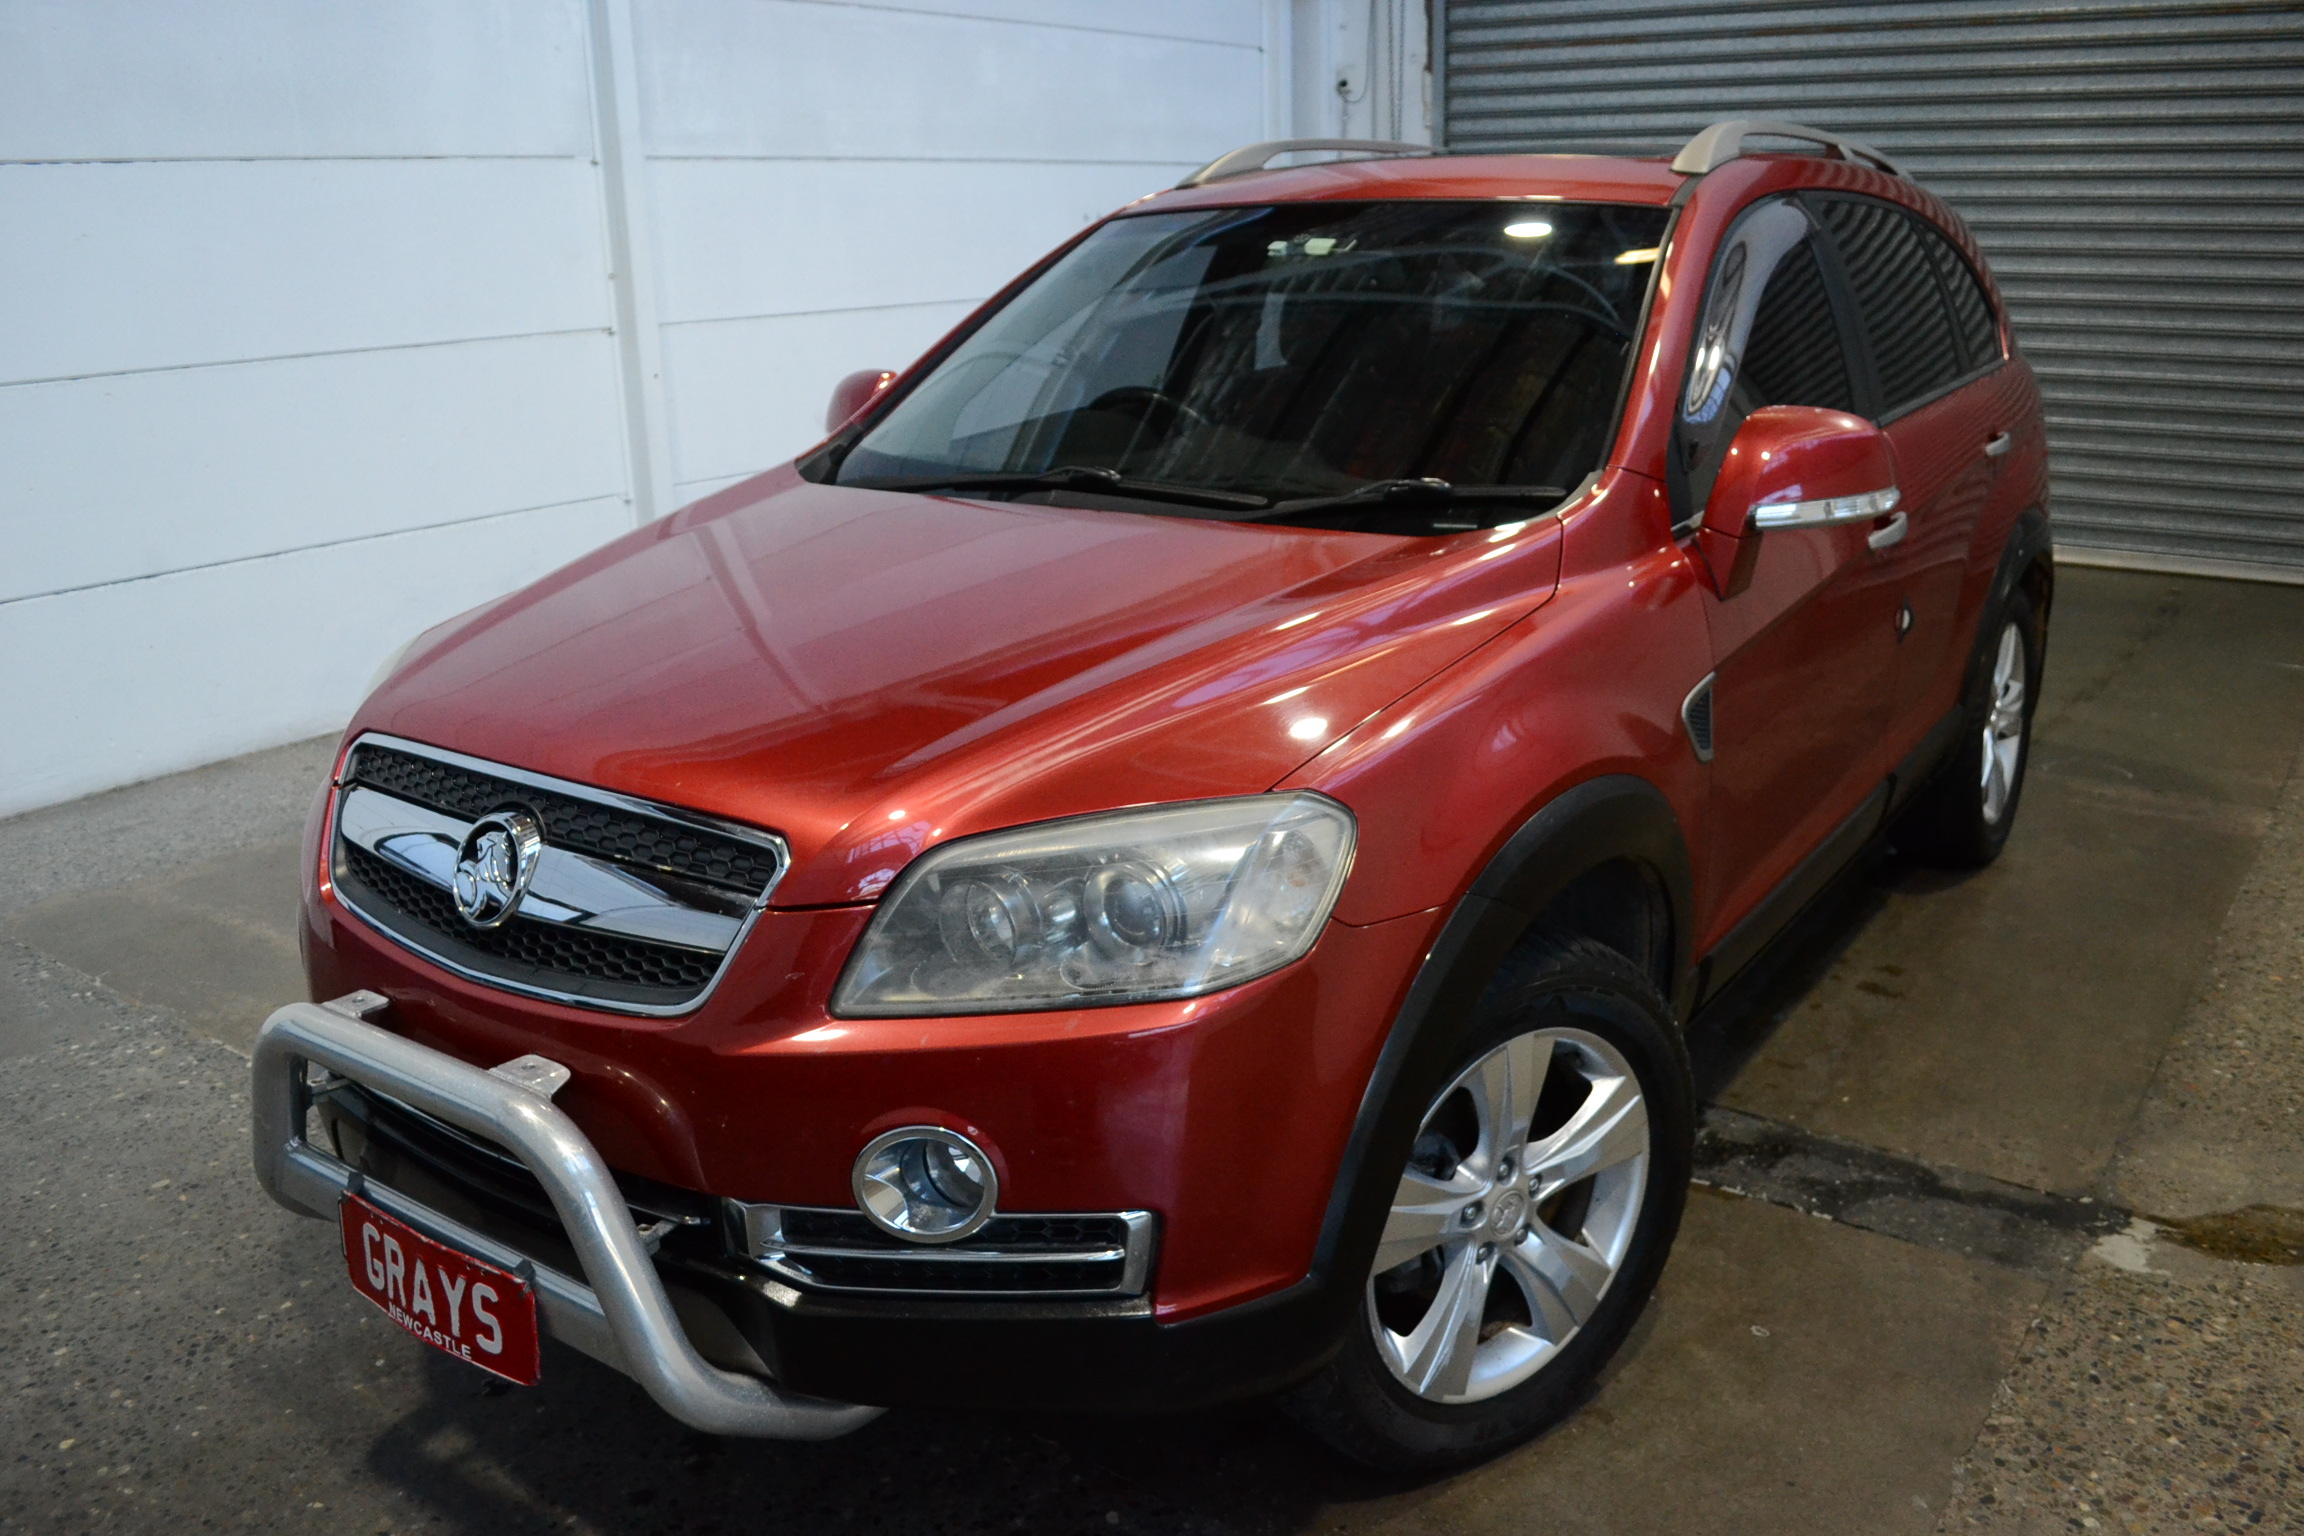 2008 Holden Captiva LX (4x4) CG Turbo Diesel Automatic 7 Seats Wagon